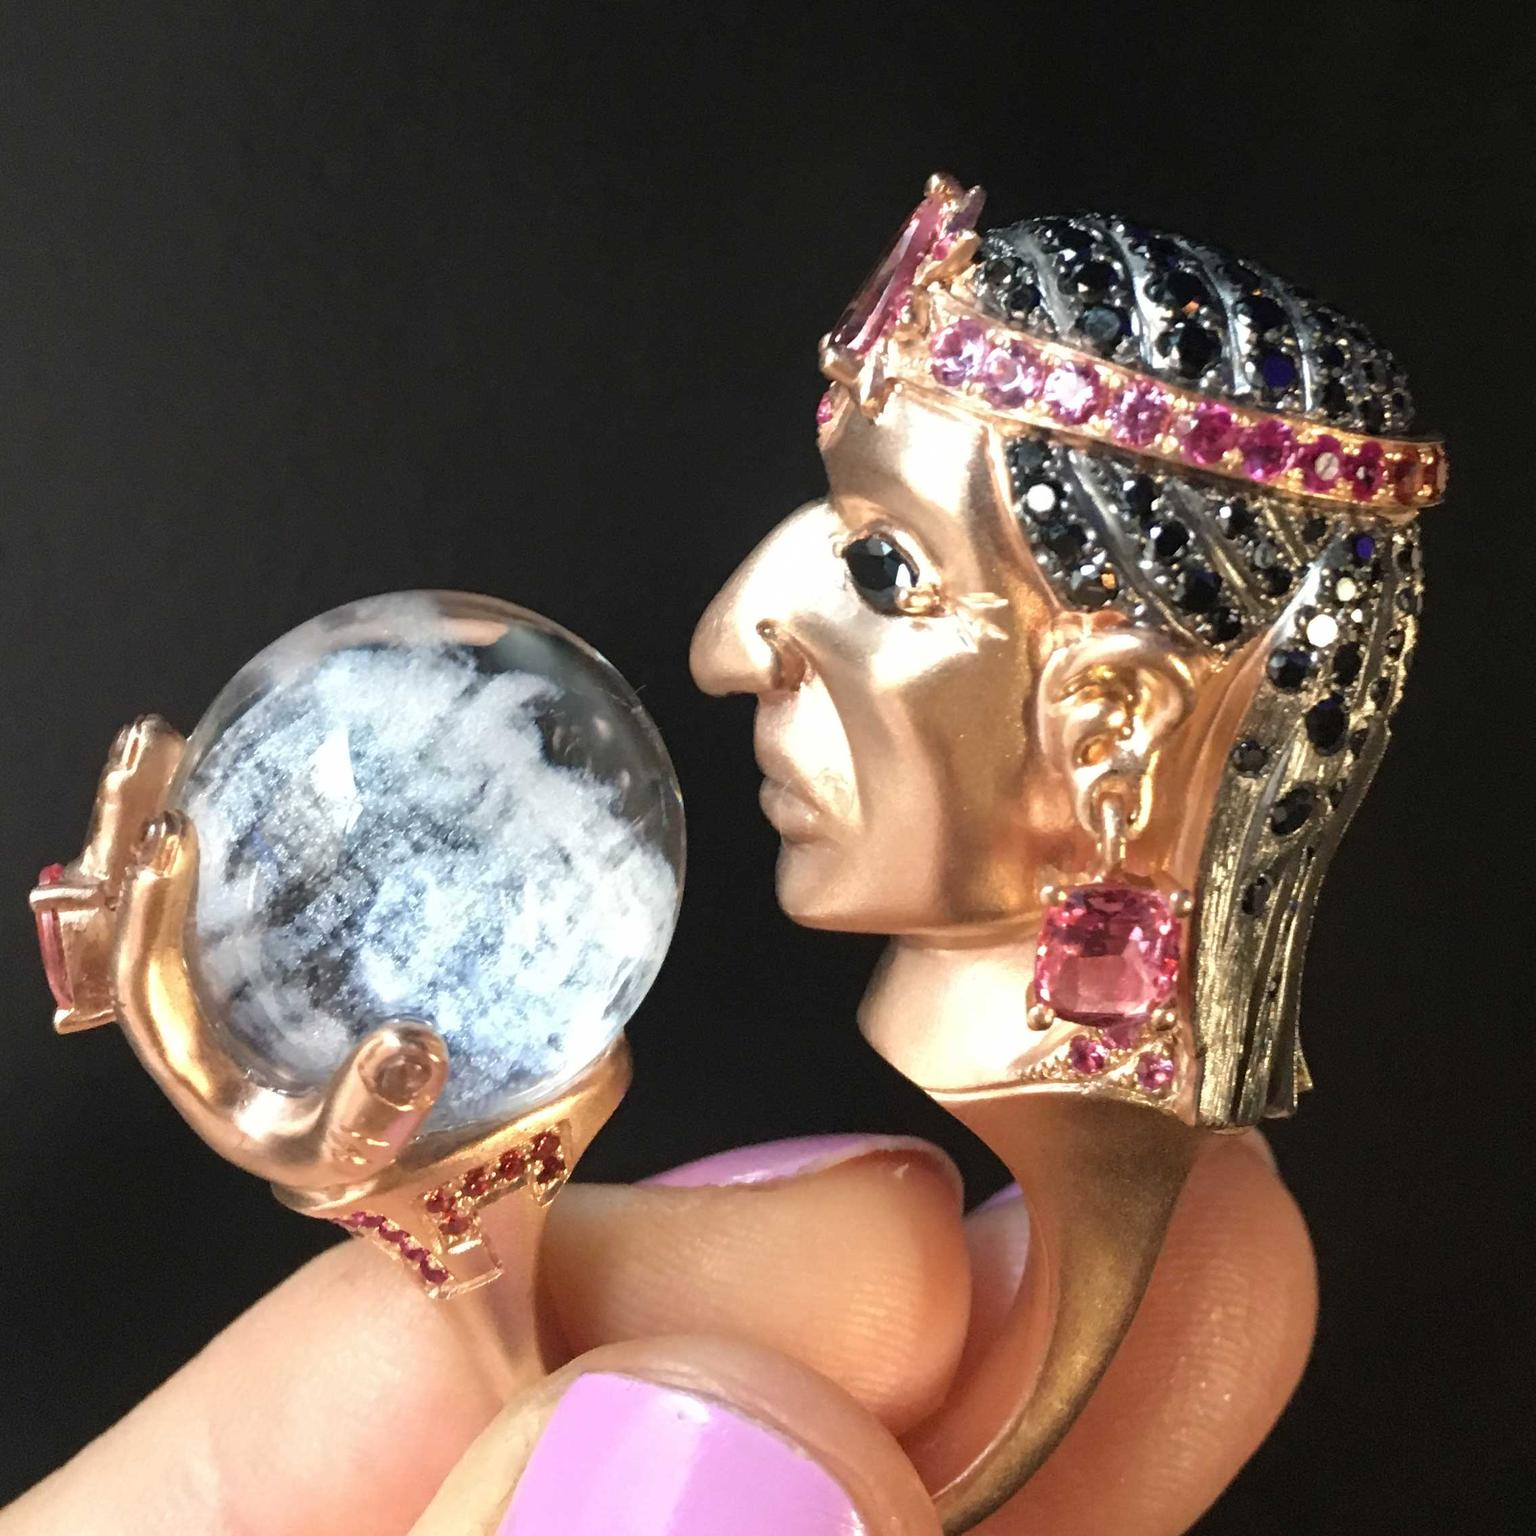 Lydia Courteille Rosa del Inca Atahualpa gazing into crystal ball ring